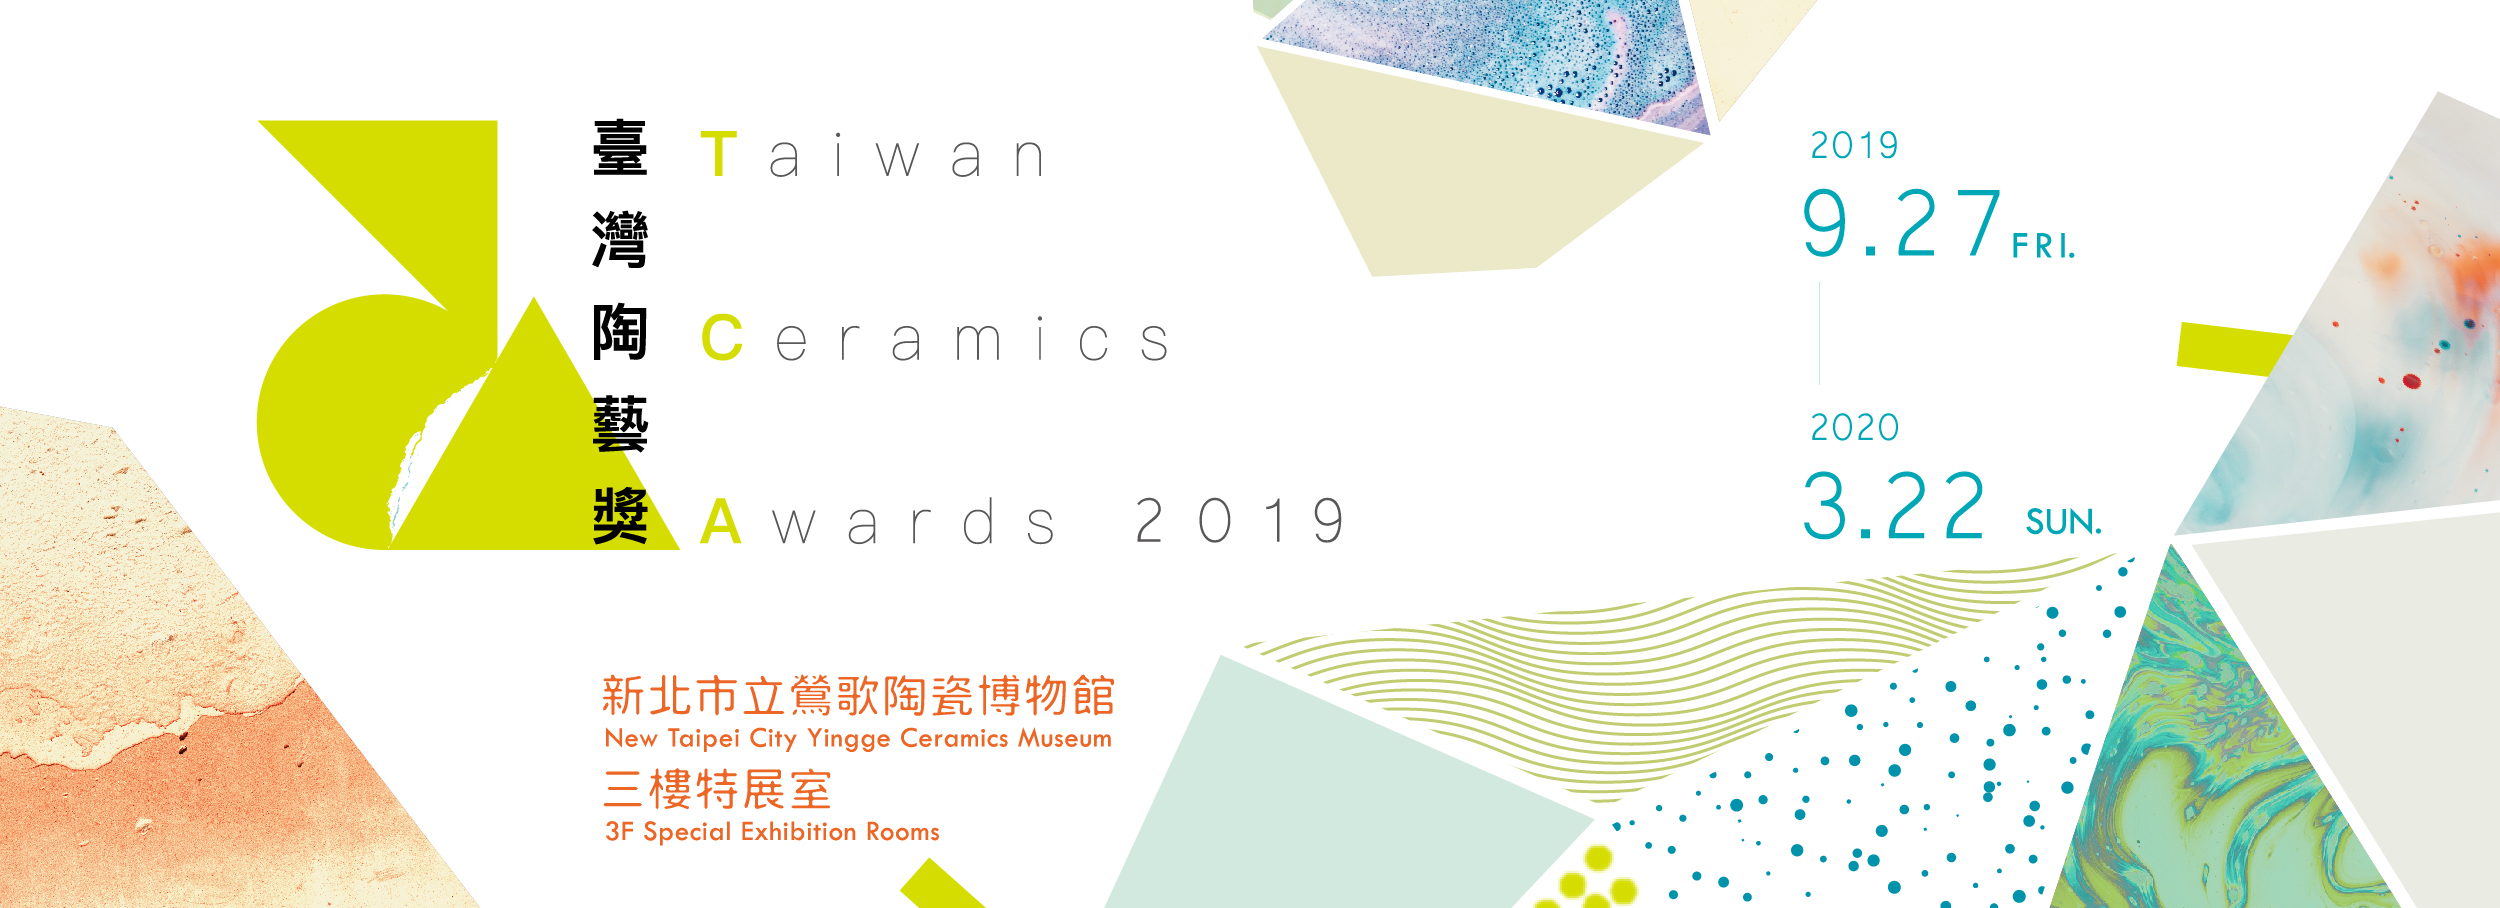 The Taiwan Ceramics Awards 2019